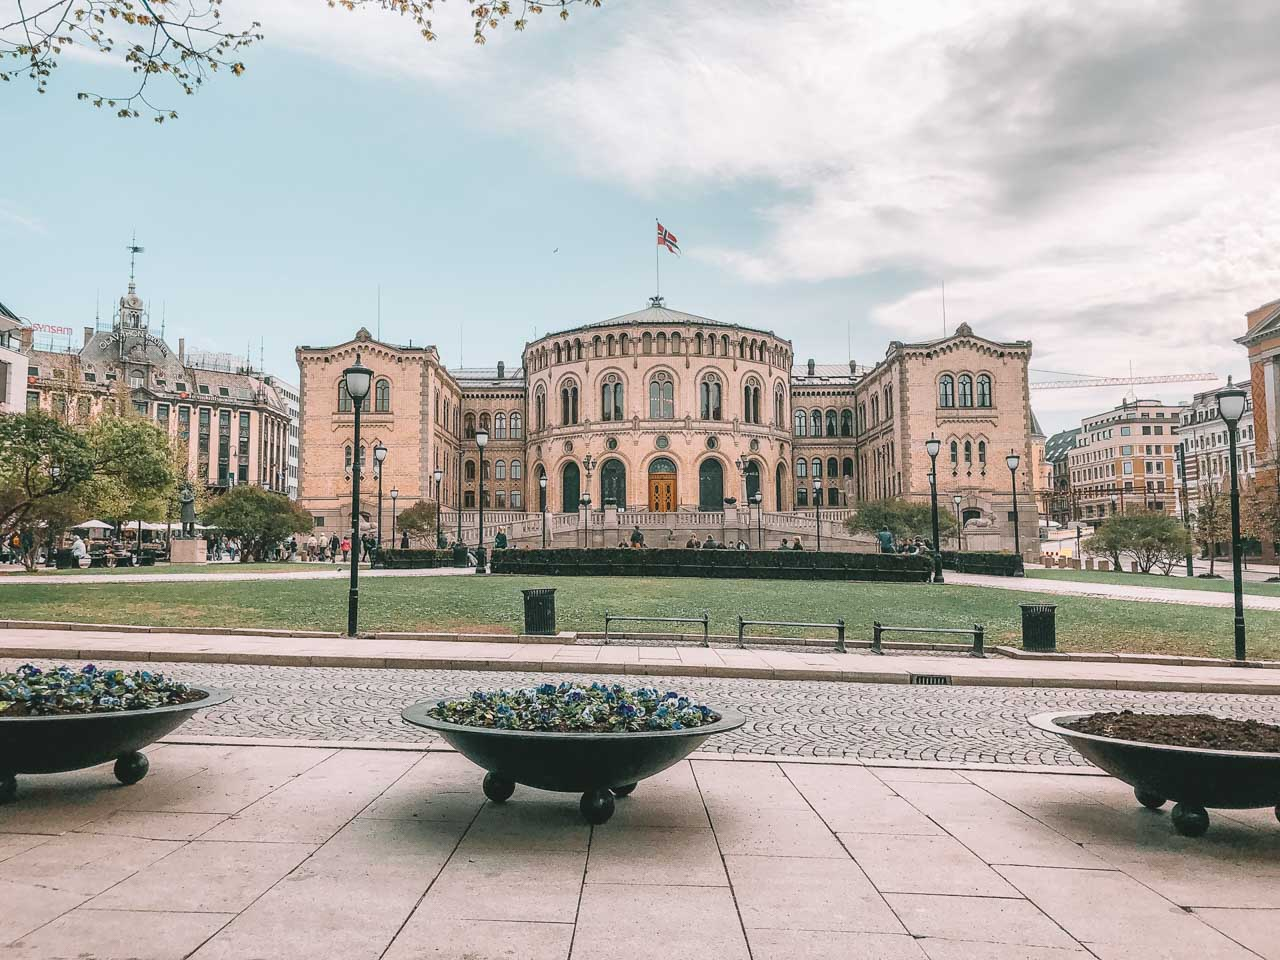 The Parliament building (Stortinget) in Oslo, Norway